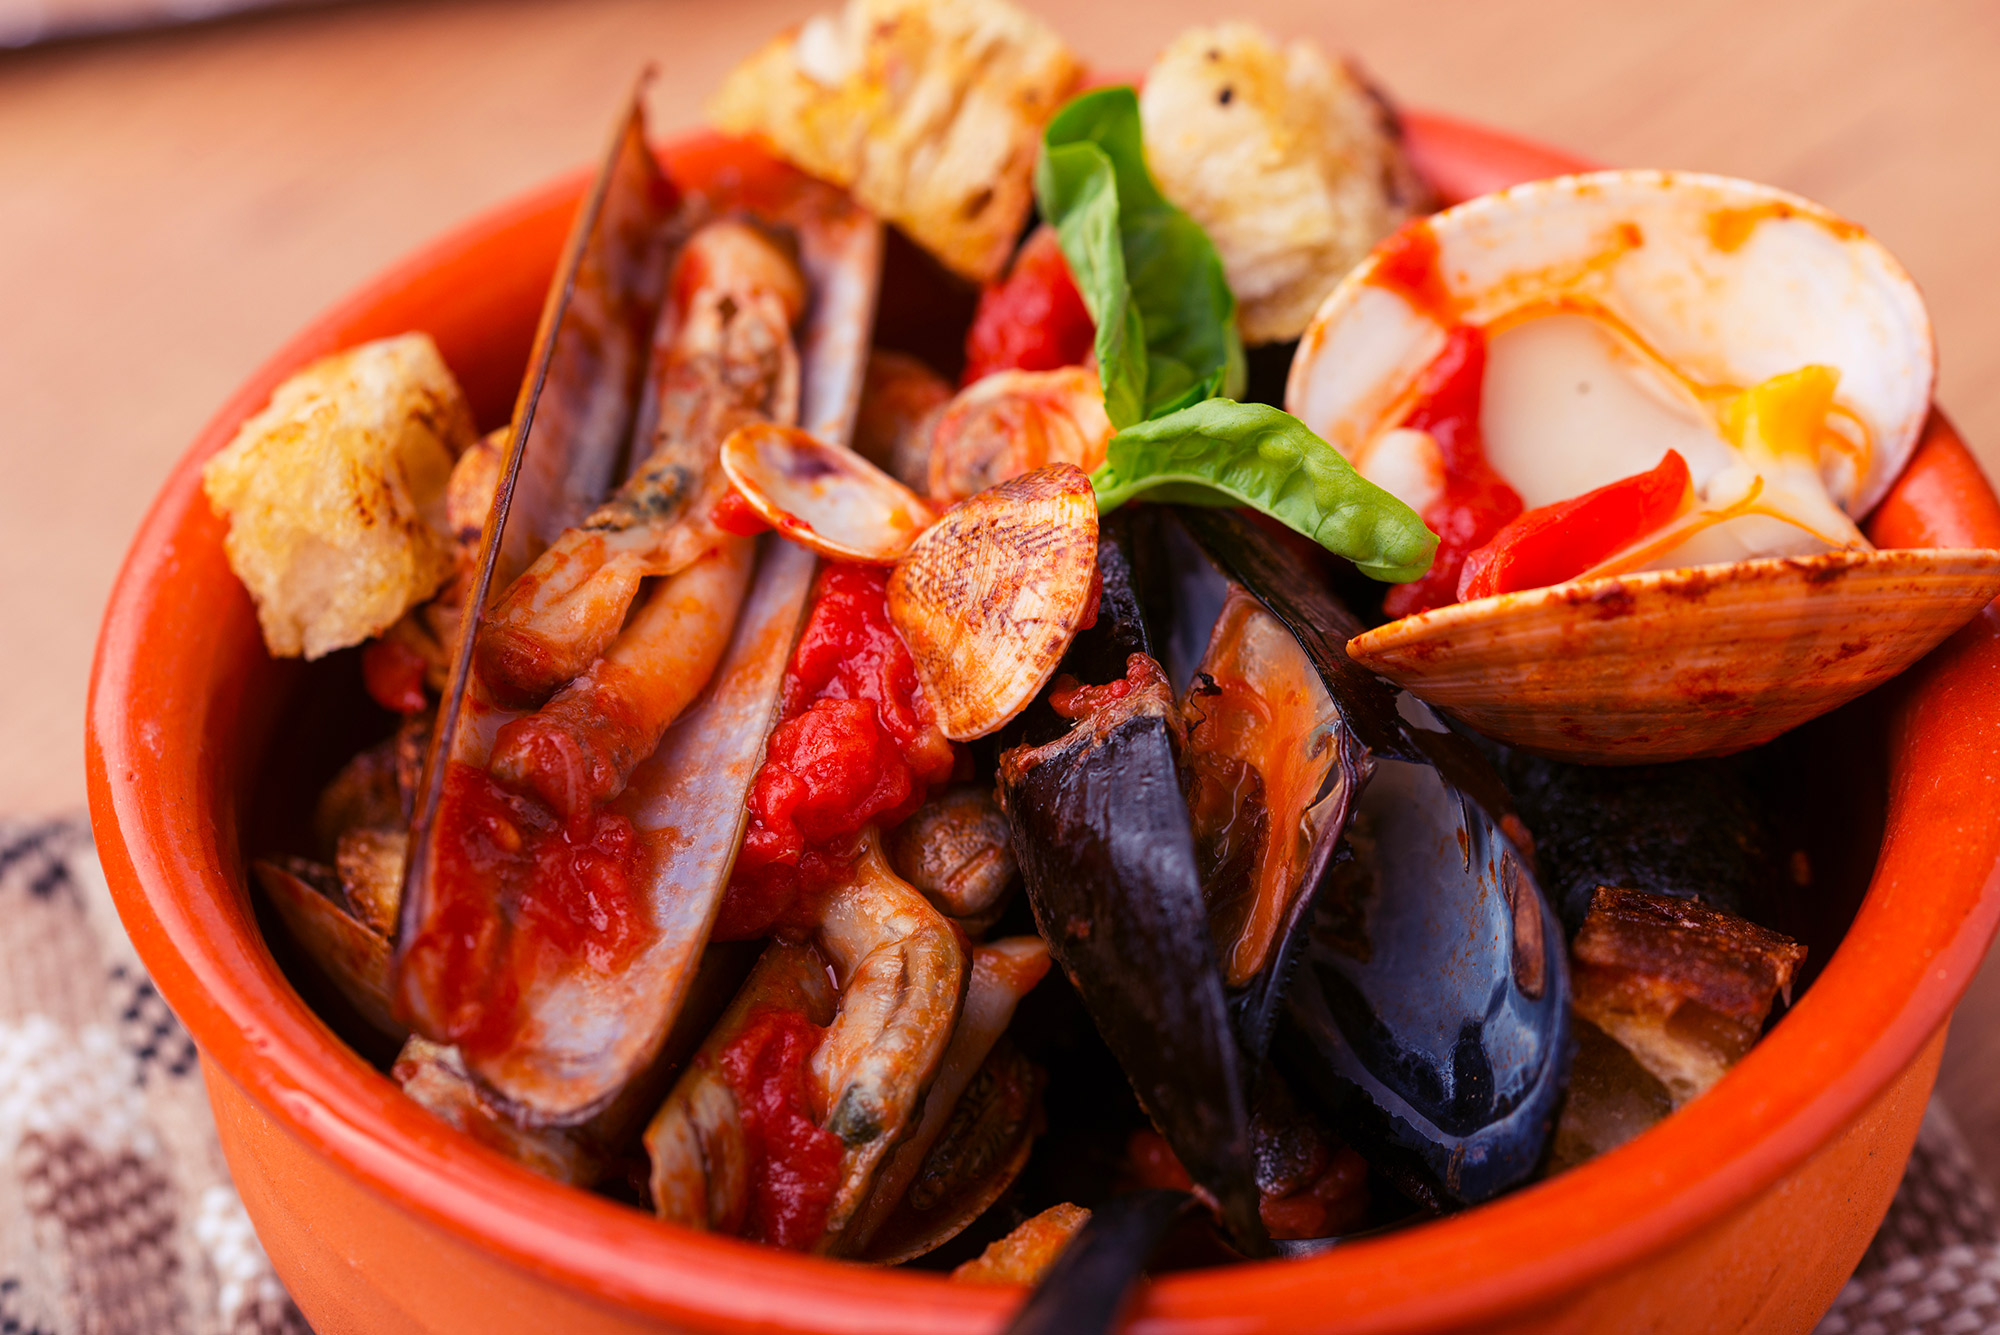 Come Preparare Una Zuppa Di Frutti Di Mare Grand Chef Evolution